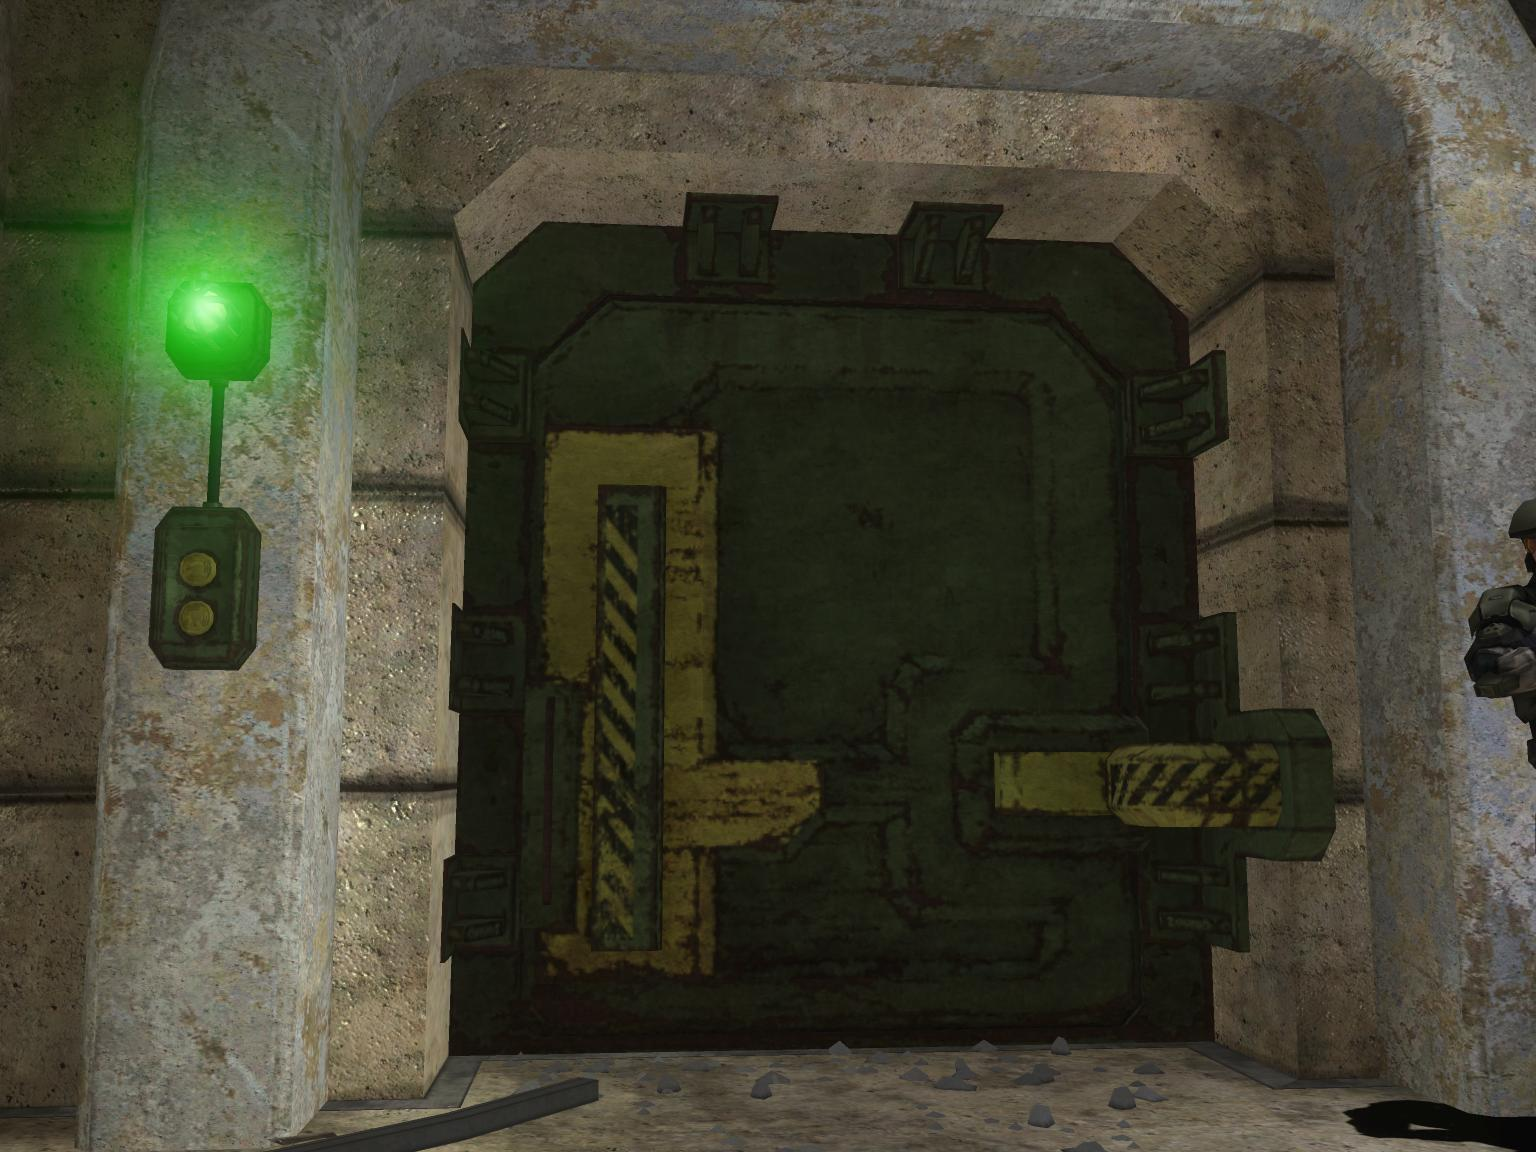 UNSC bunker door.jpg & Image - UNSC bunker door.jpg | Halo Nation | FANDOM powered by Wikia